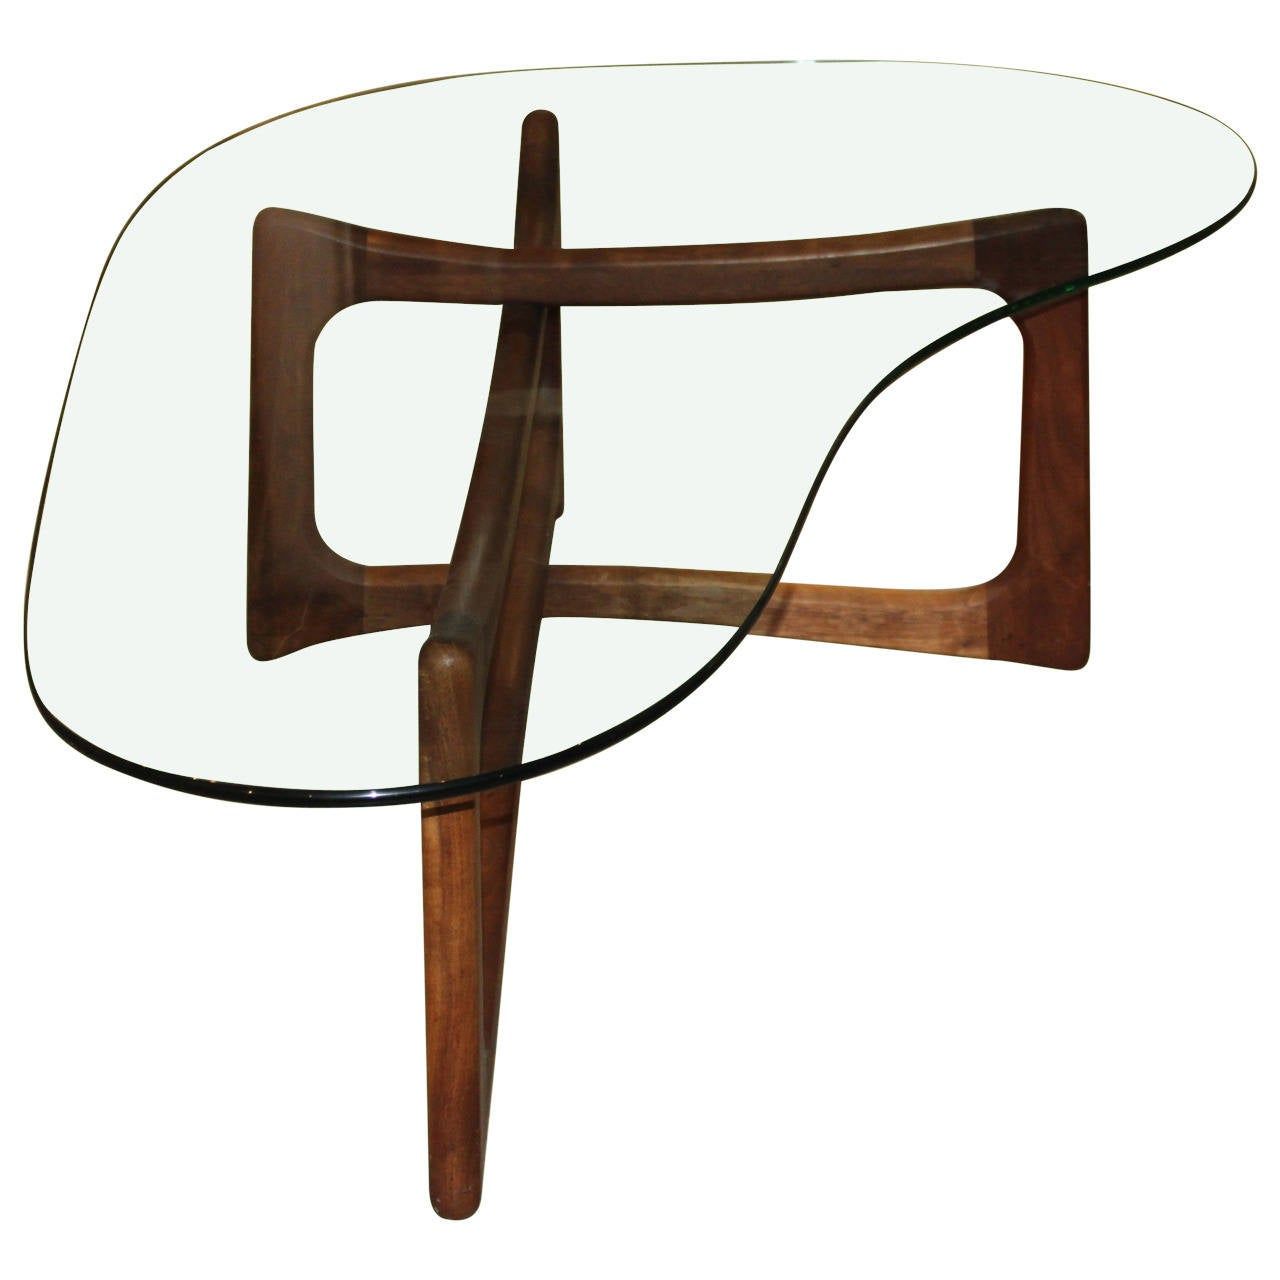 Adrian pearsall coffee table at 1stdibs adrian pearsall coffee table 1 geotapseo Choice Image